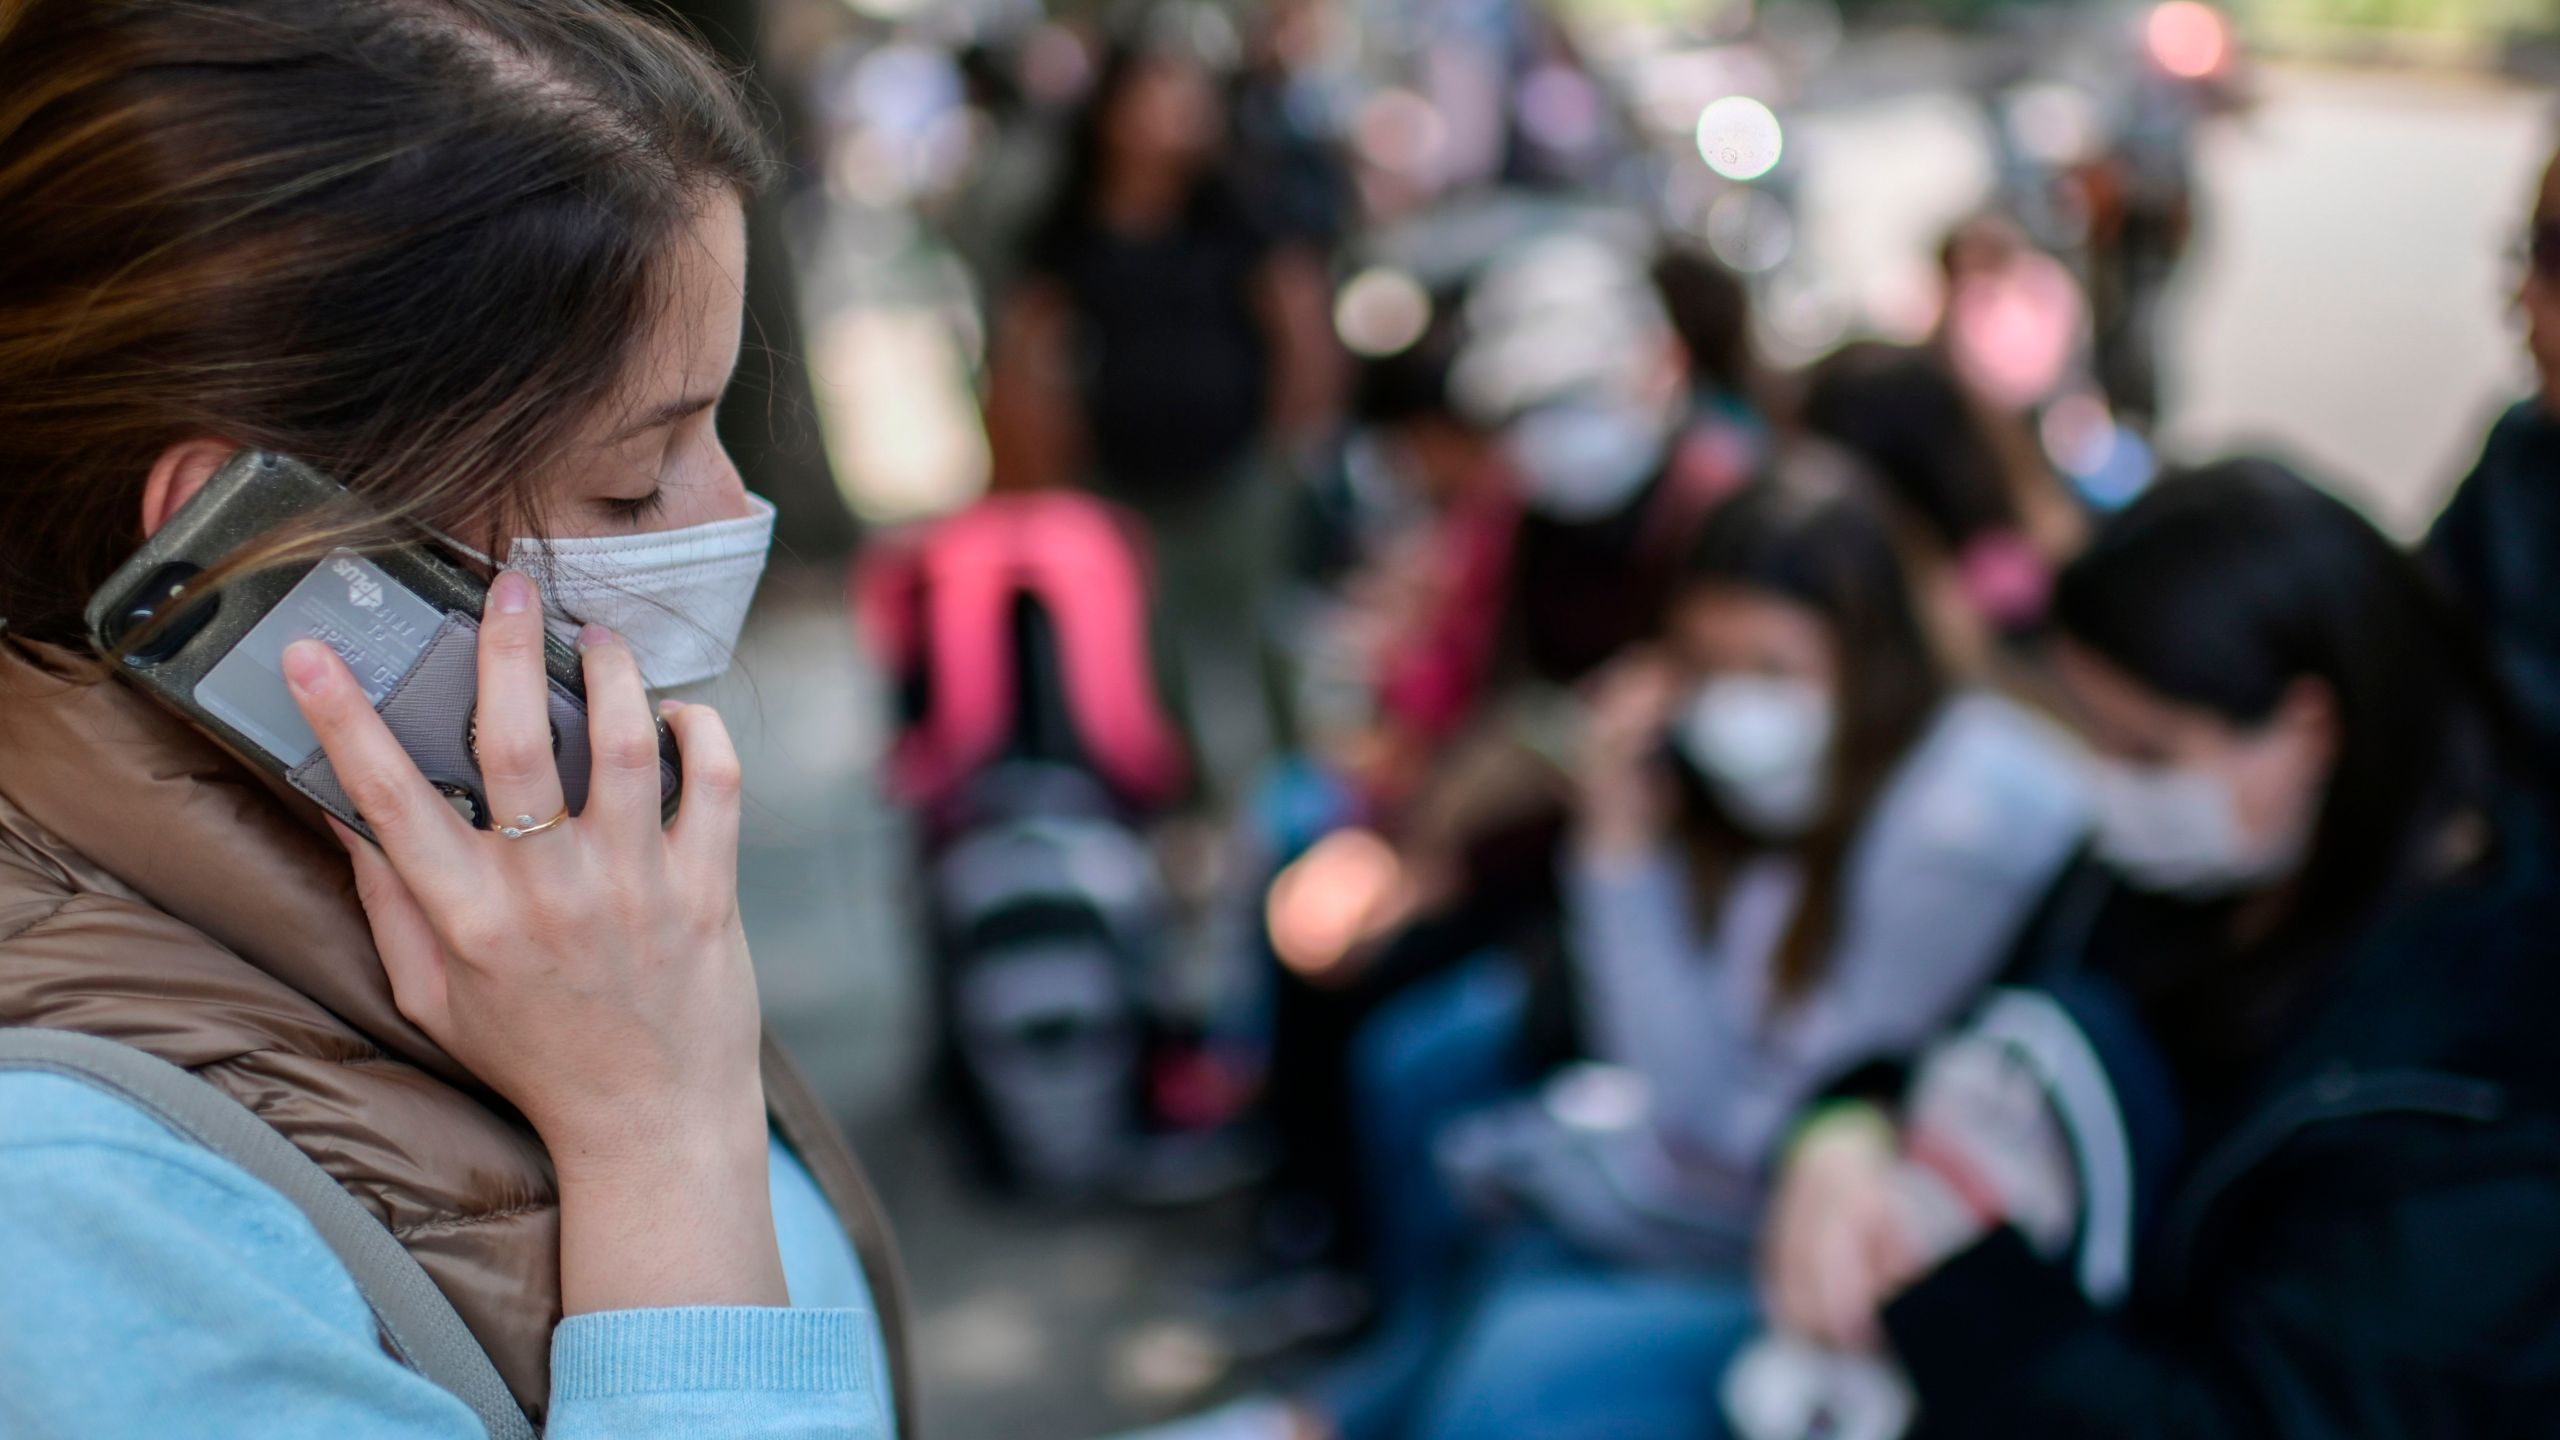 A woman wearing a face mask speaks on her mobile phone as she waits outside the consulate of Peru in Mexico City, on March 18, 2020. (Pedro Pardo/AFP via Getty Images)